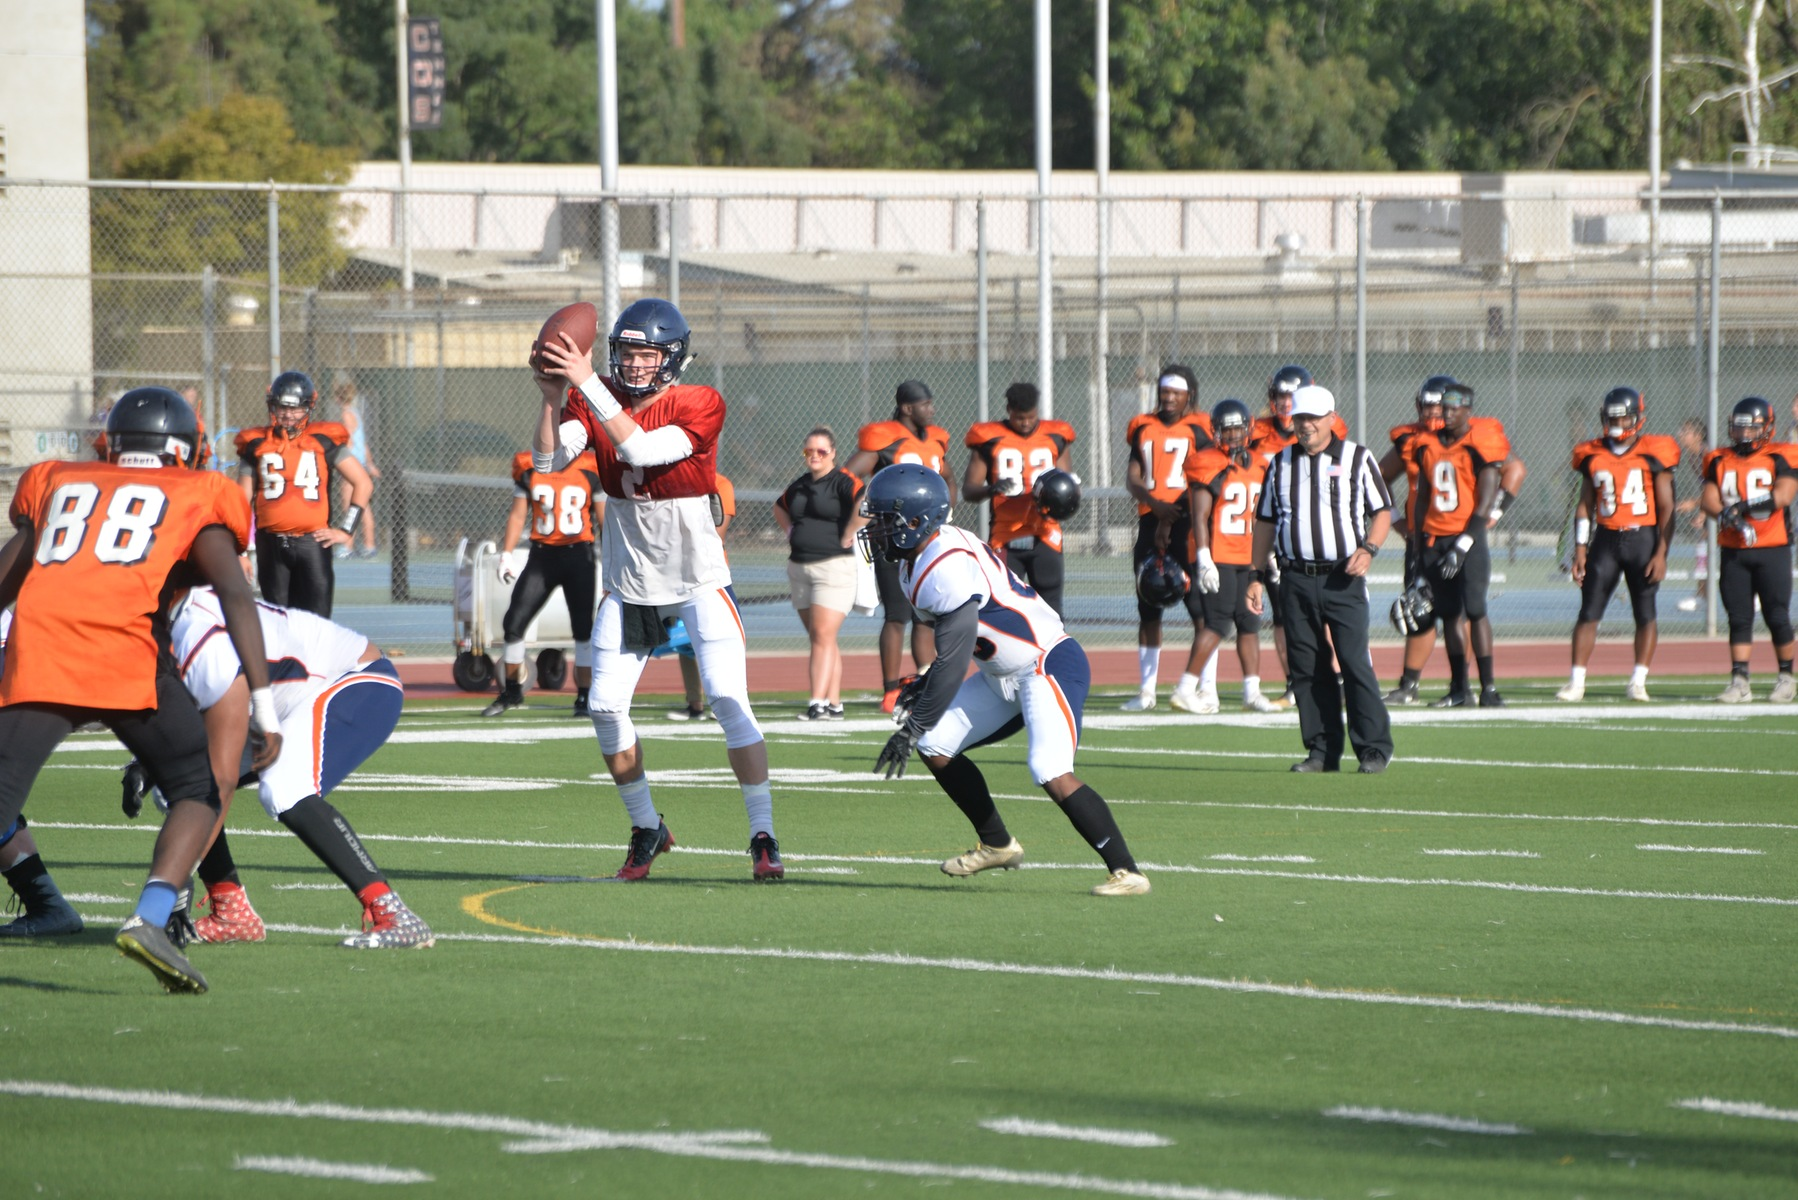 Starting QB Ryan Johnson takes a snap earlier this season in a scrimmage versus Reedley College.